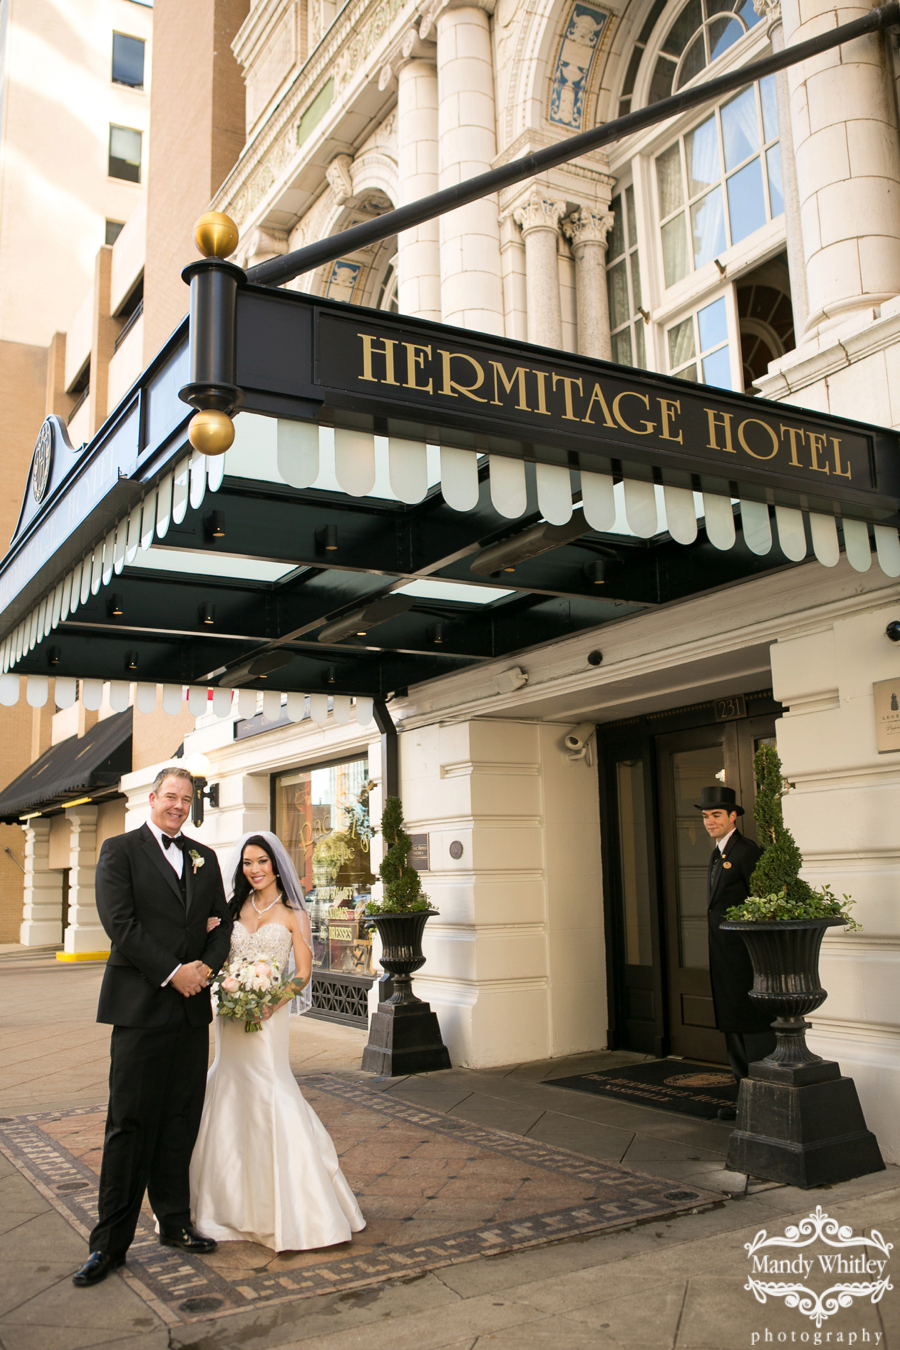 Nashville Wedding at the Hermitage Hotel by Mandy Whitley Photography